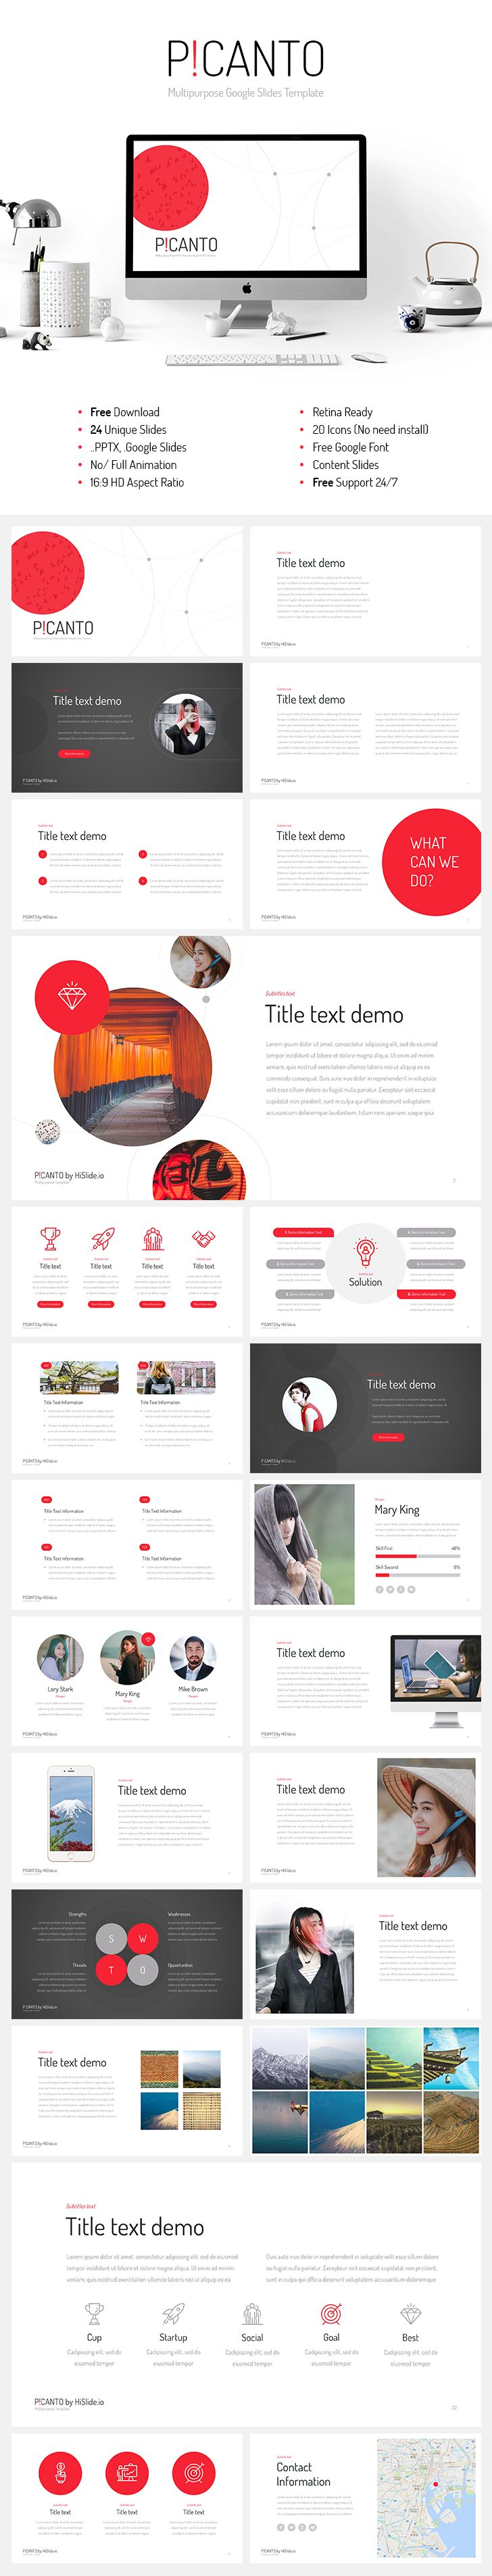 Picanto-Google-Slides-template-free-download